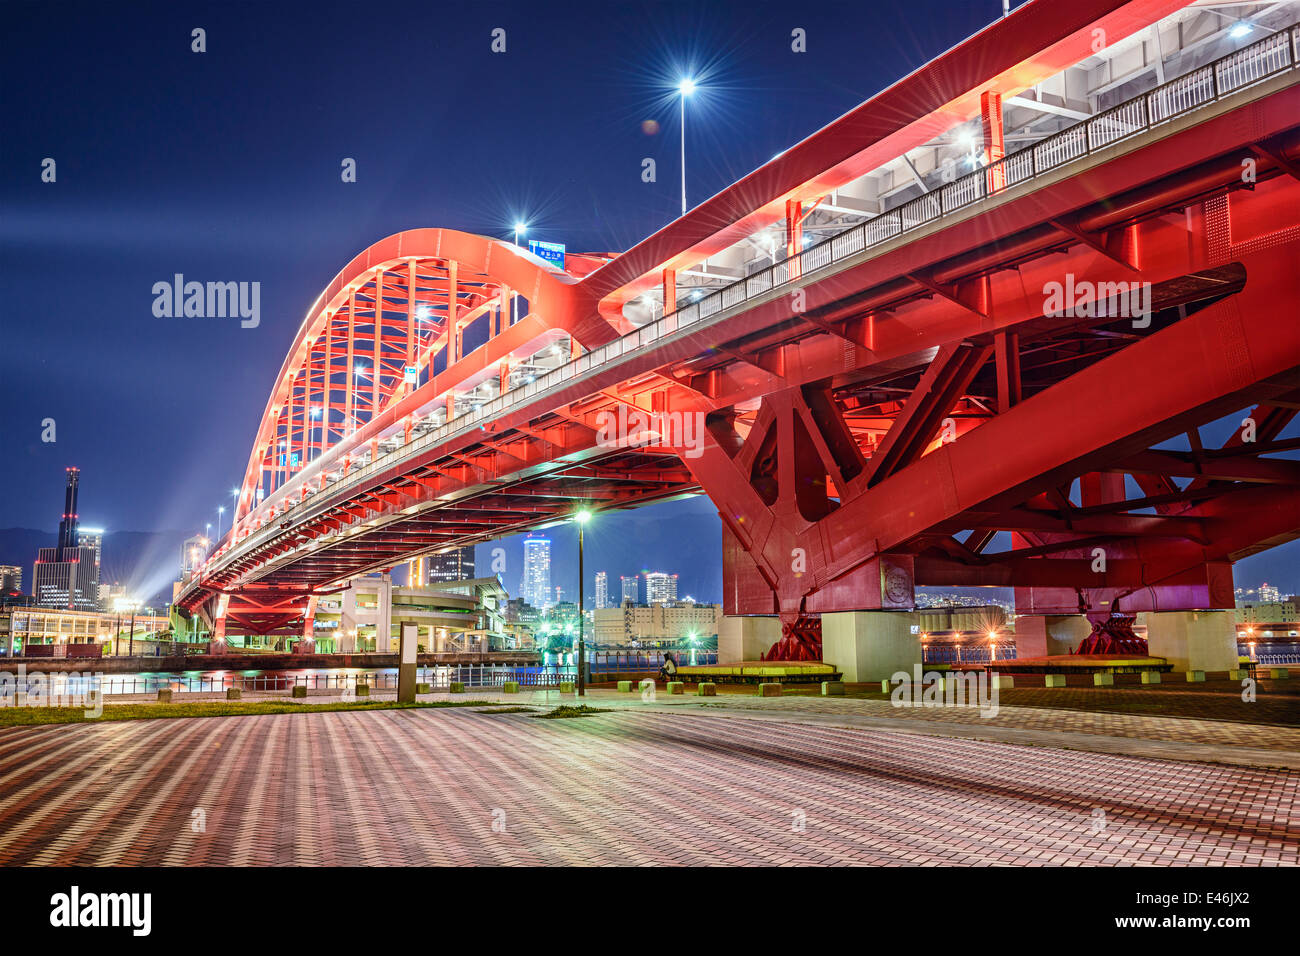 Kobe, Japan at Port Island Bridge. - Stock Image